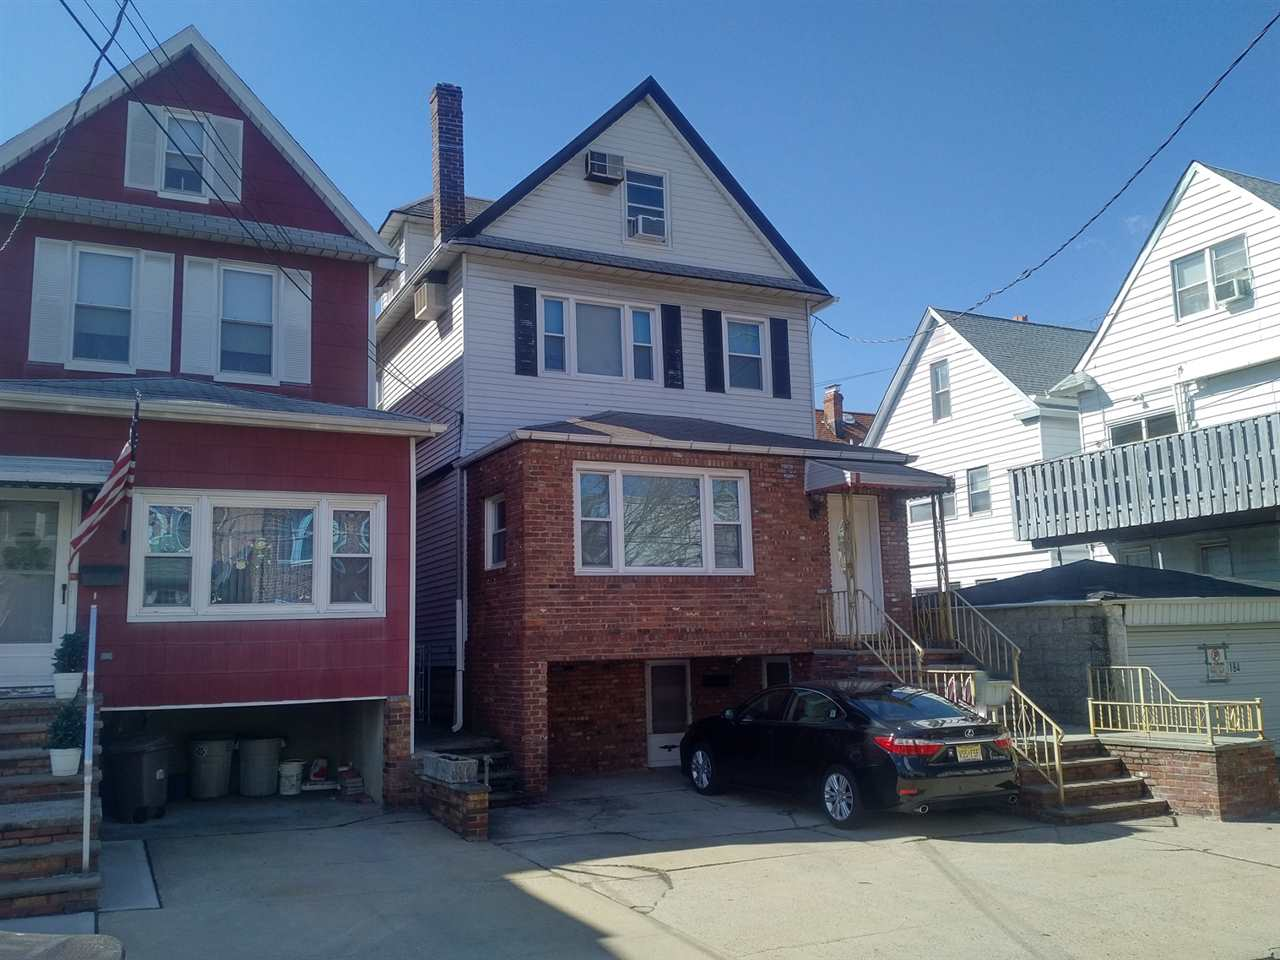 104 WEST 47TH ST, Bayonne, NJ 07002